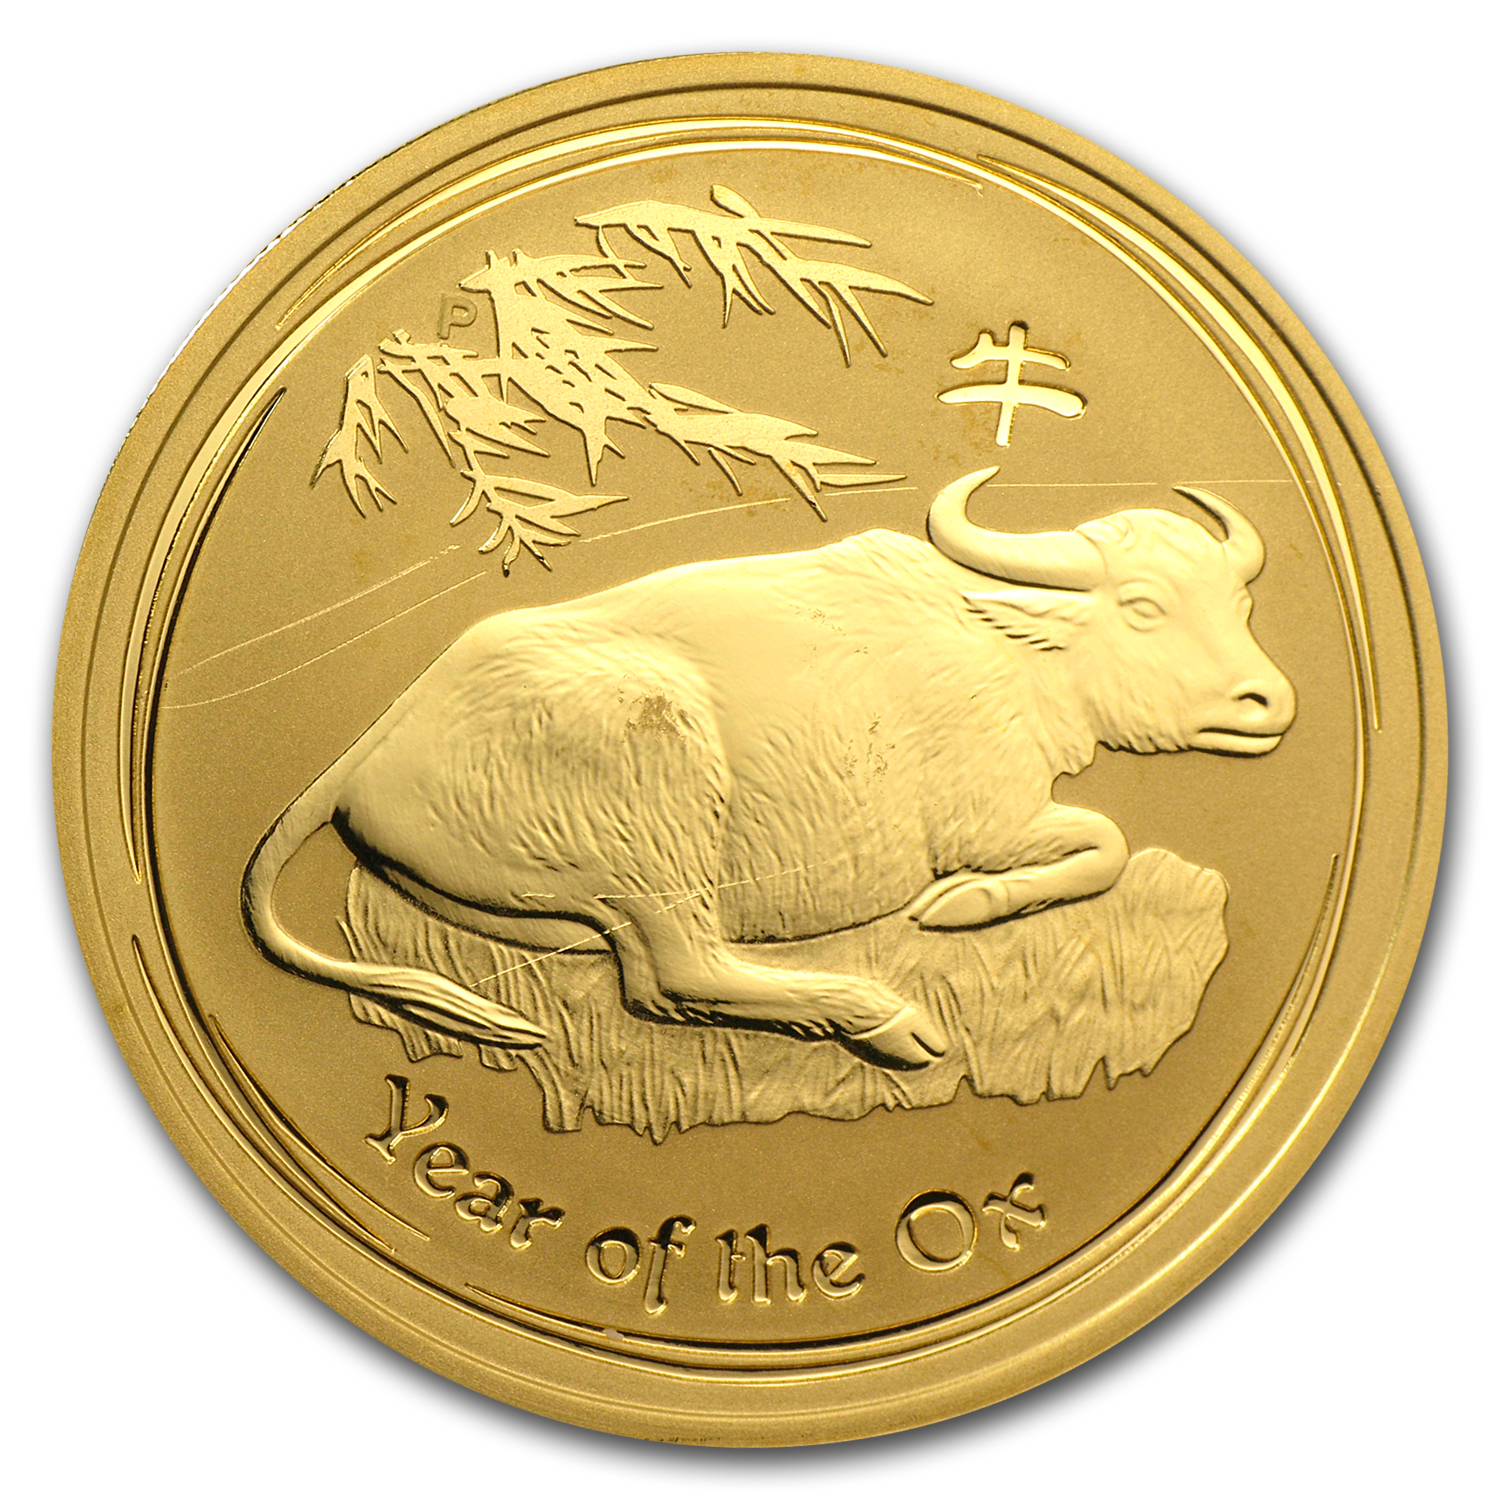 2009 1 oz Gold Lunar Year of the Ox (Series II) (Abrasions)